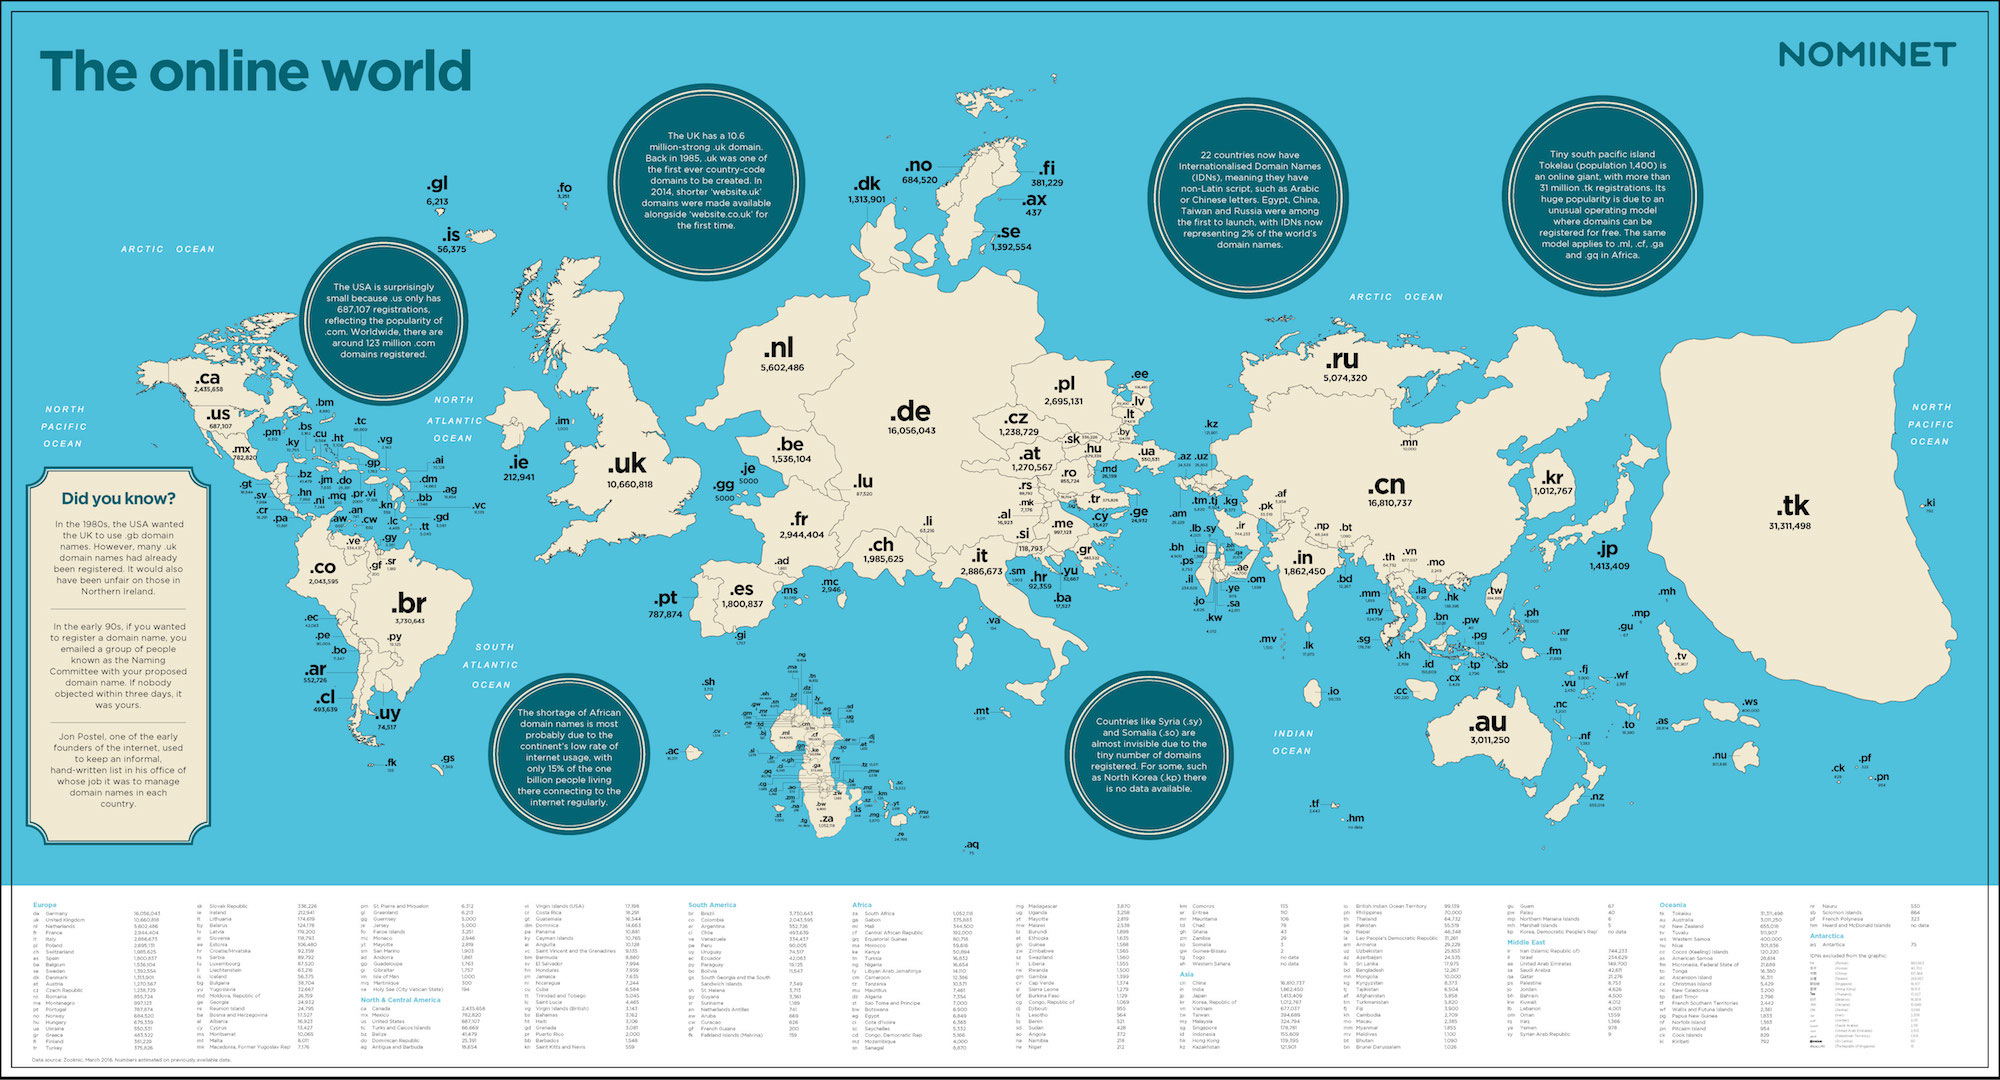 If Countries Web Domains Were Land Masses Earth Would Look Like - Earth map with country names